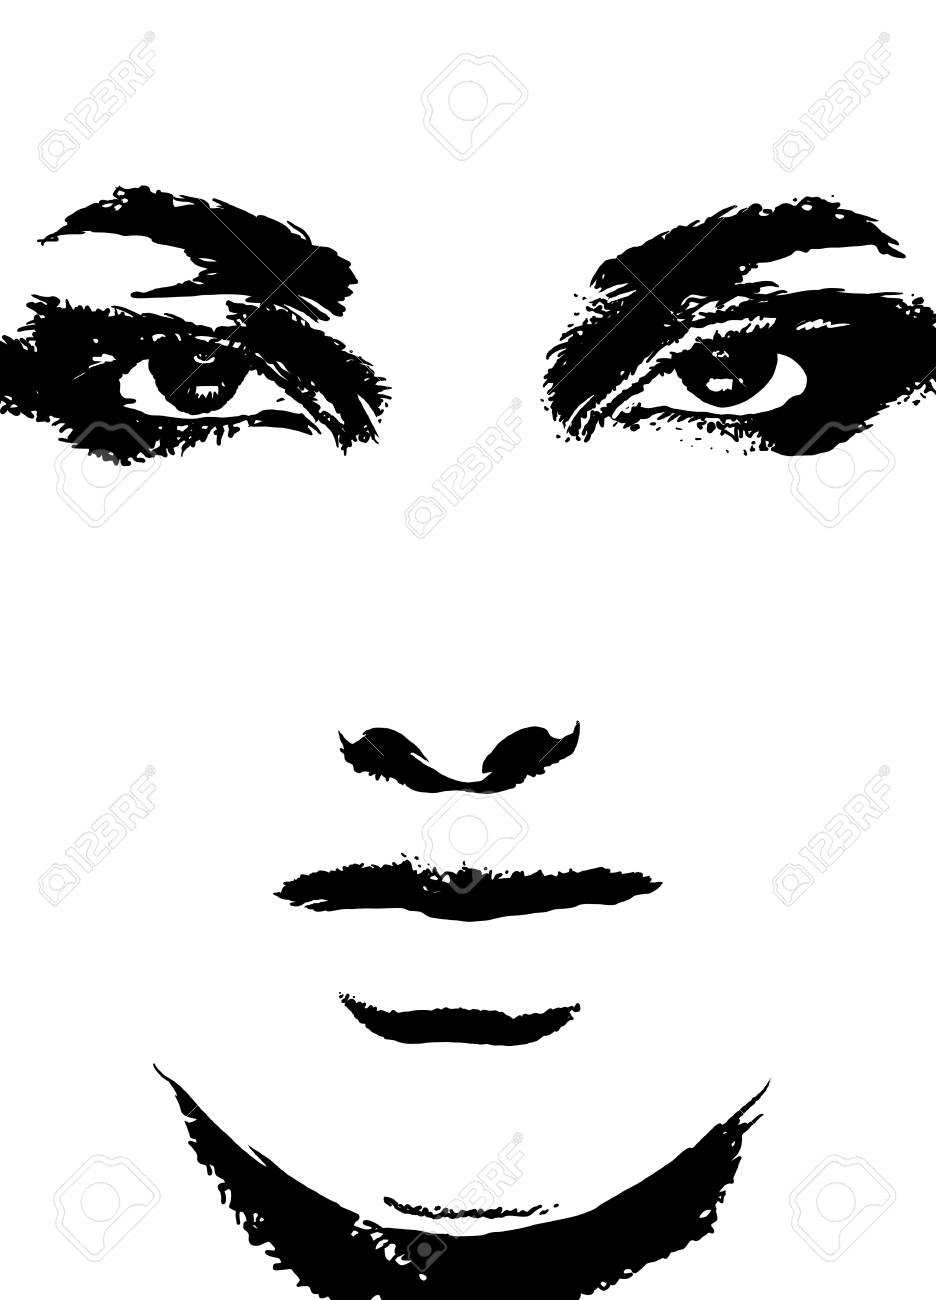 Abstract woman face. Fashion illustration,brush style.